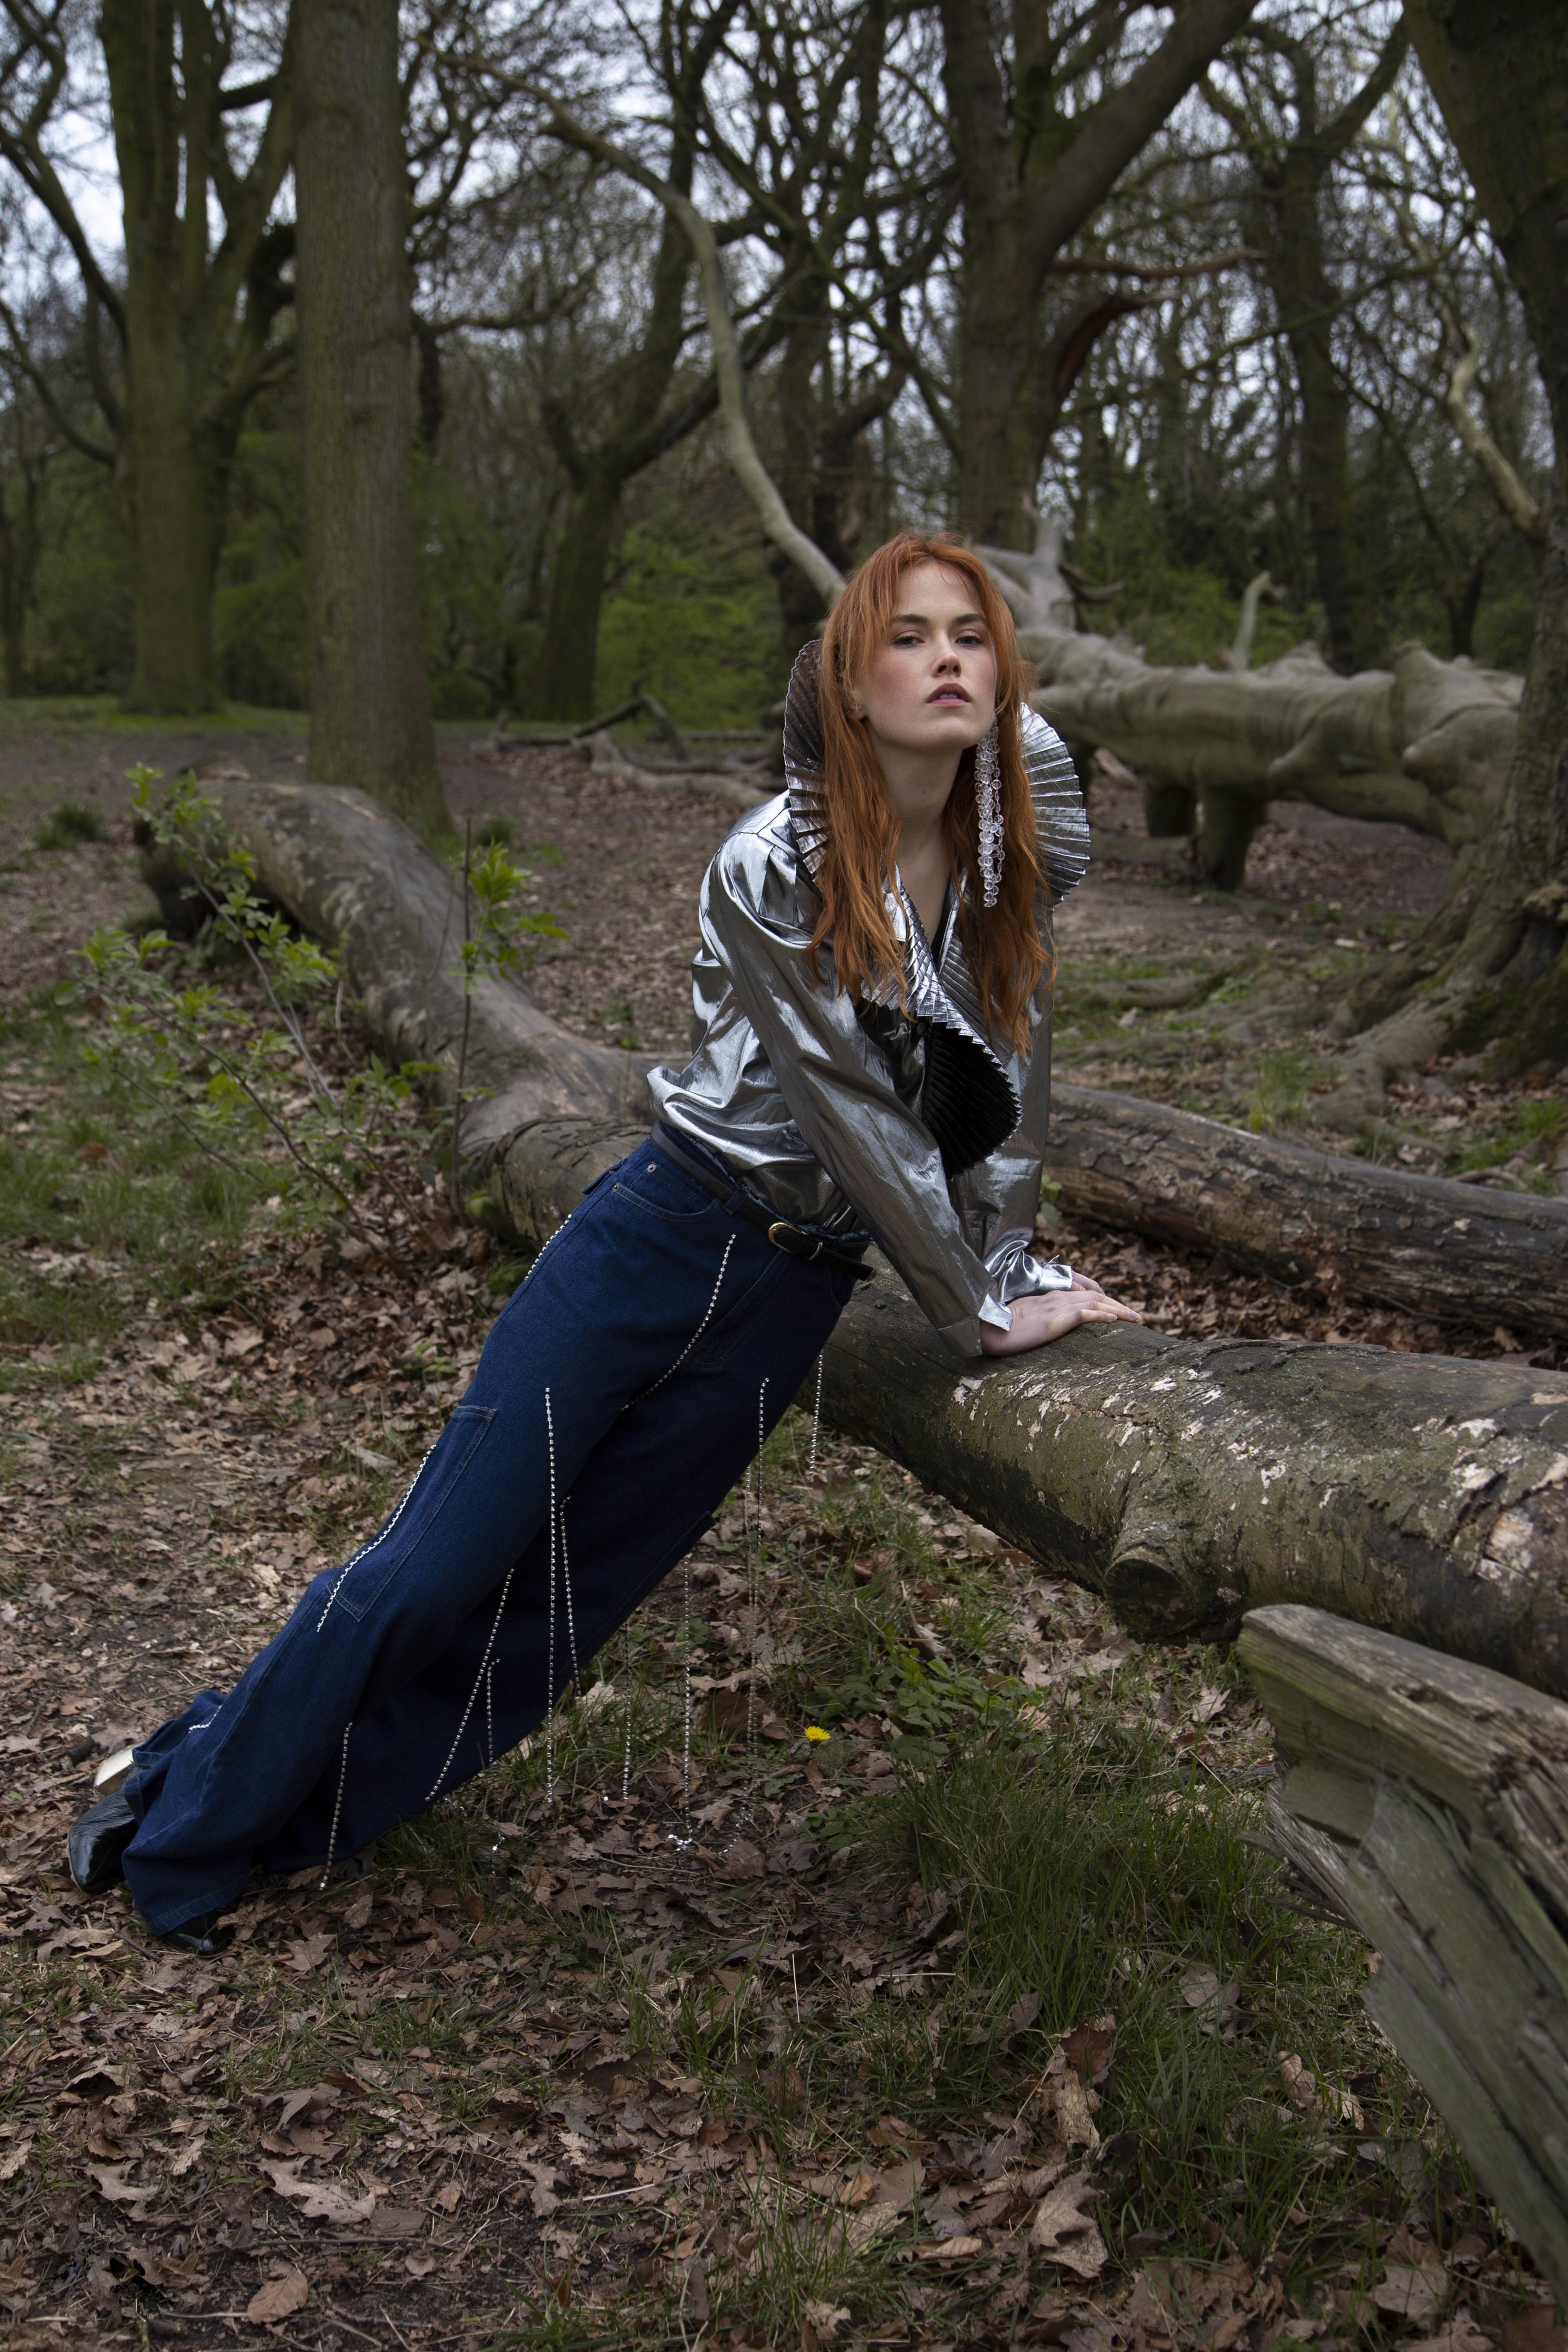 Photography by Kerttu Kukk  Styling by In Woo  Model Blue Sumrie from Titanium  Creative Direction by Megan Elman